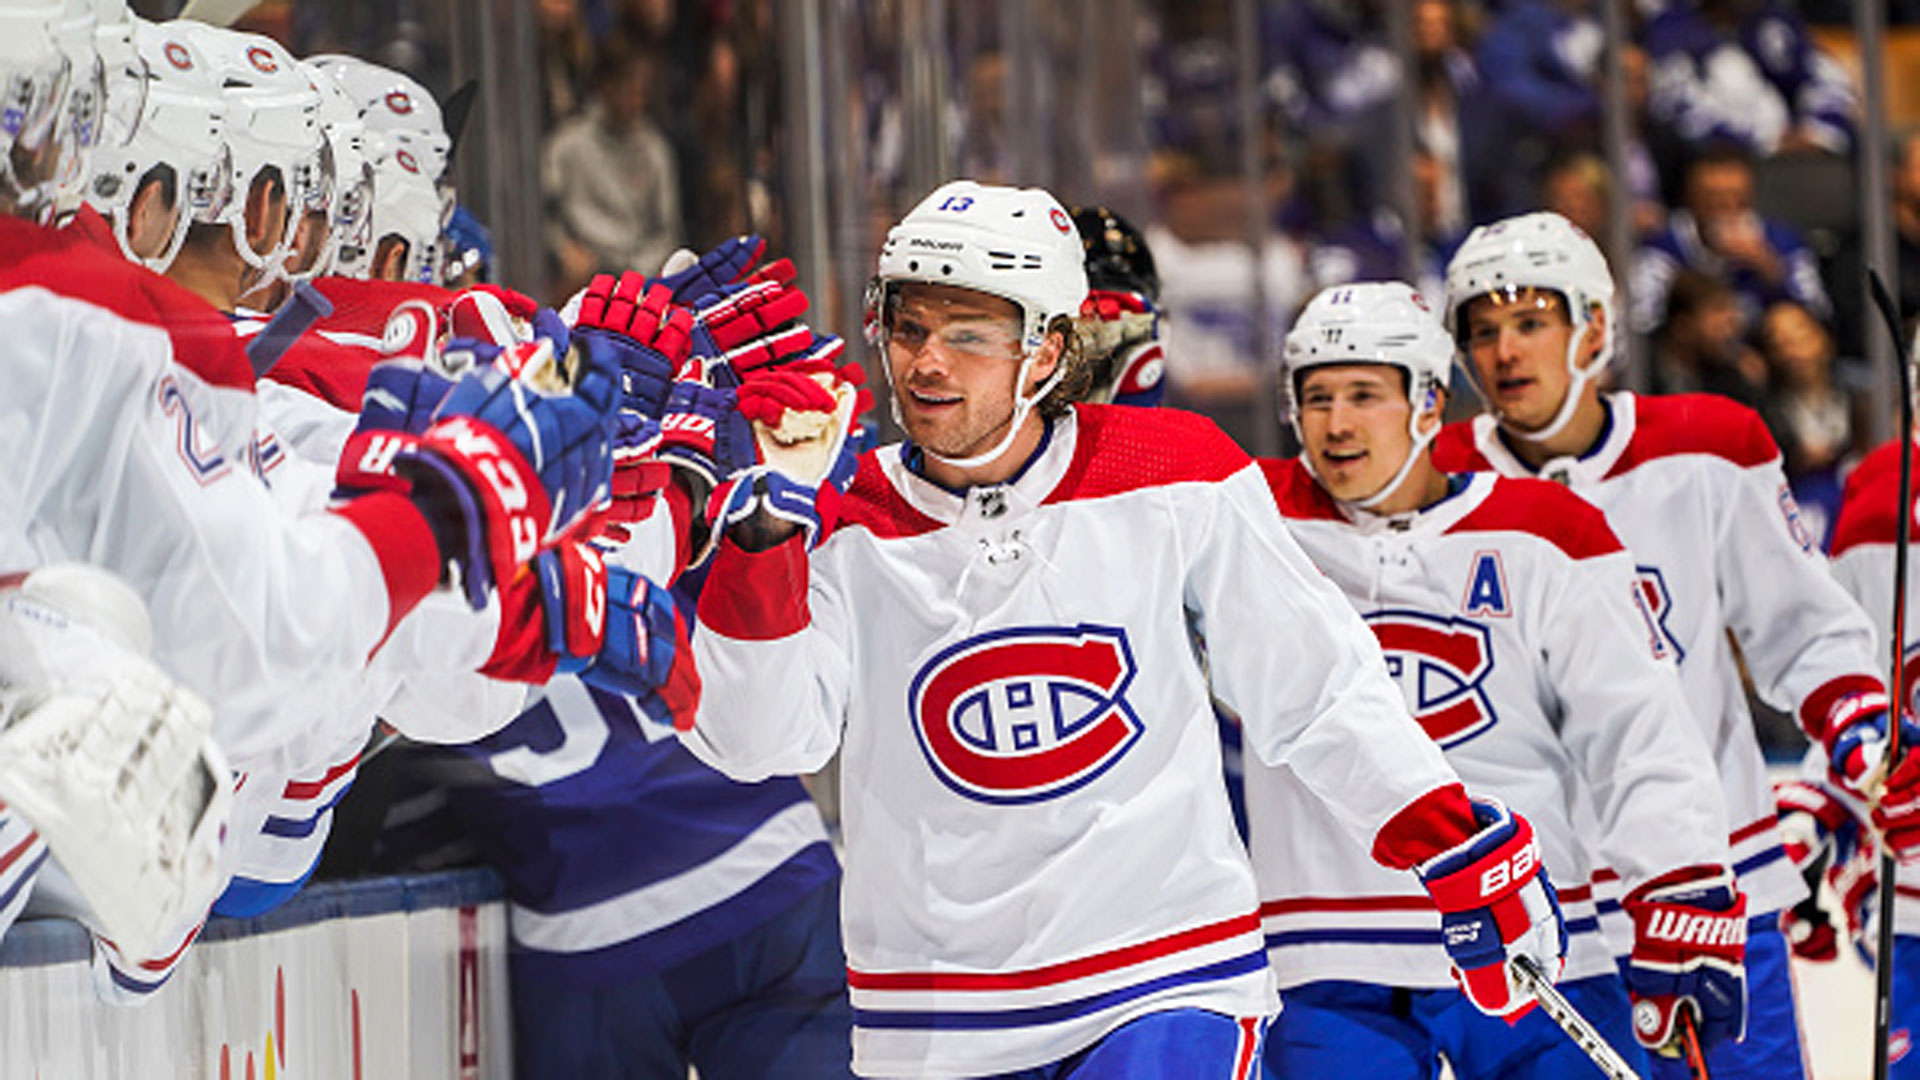 Can dynamic Domi replicate his offensive outburst from last season?